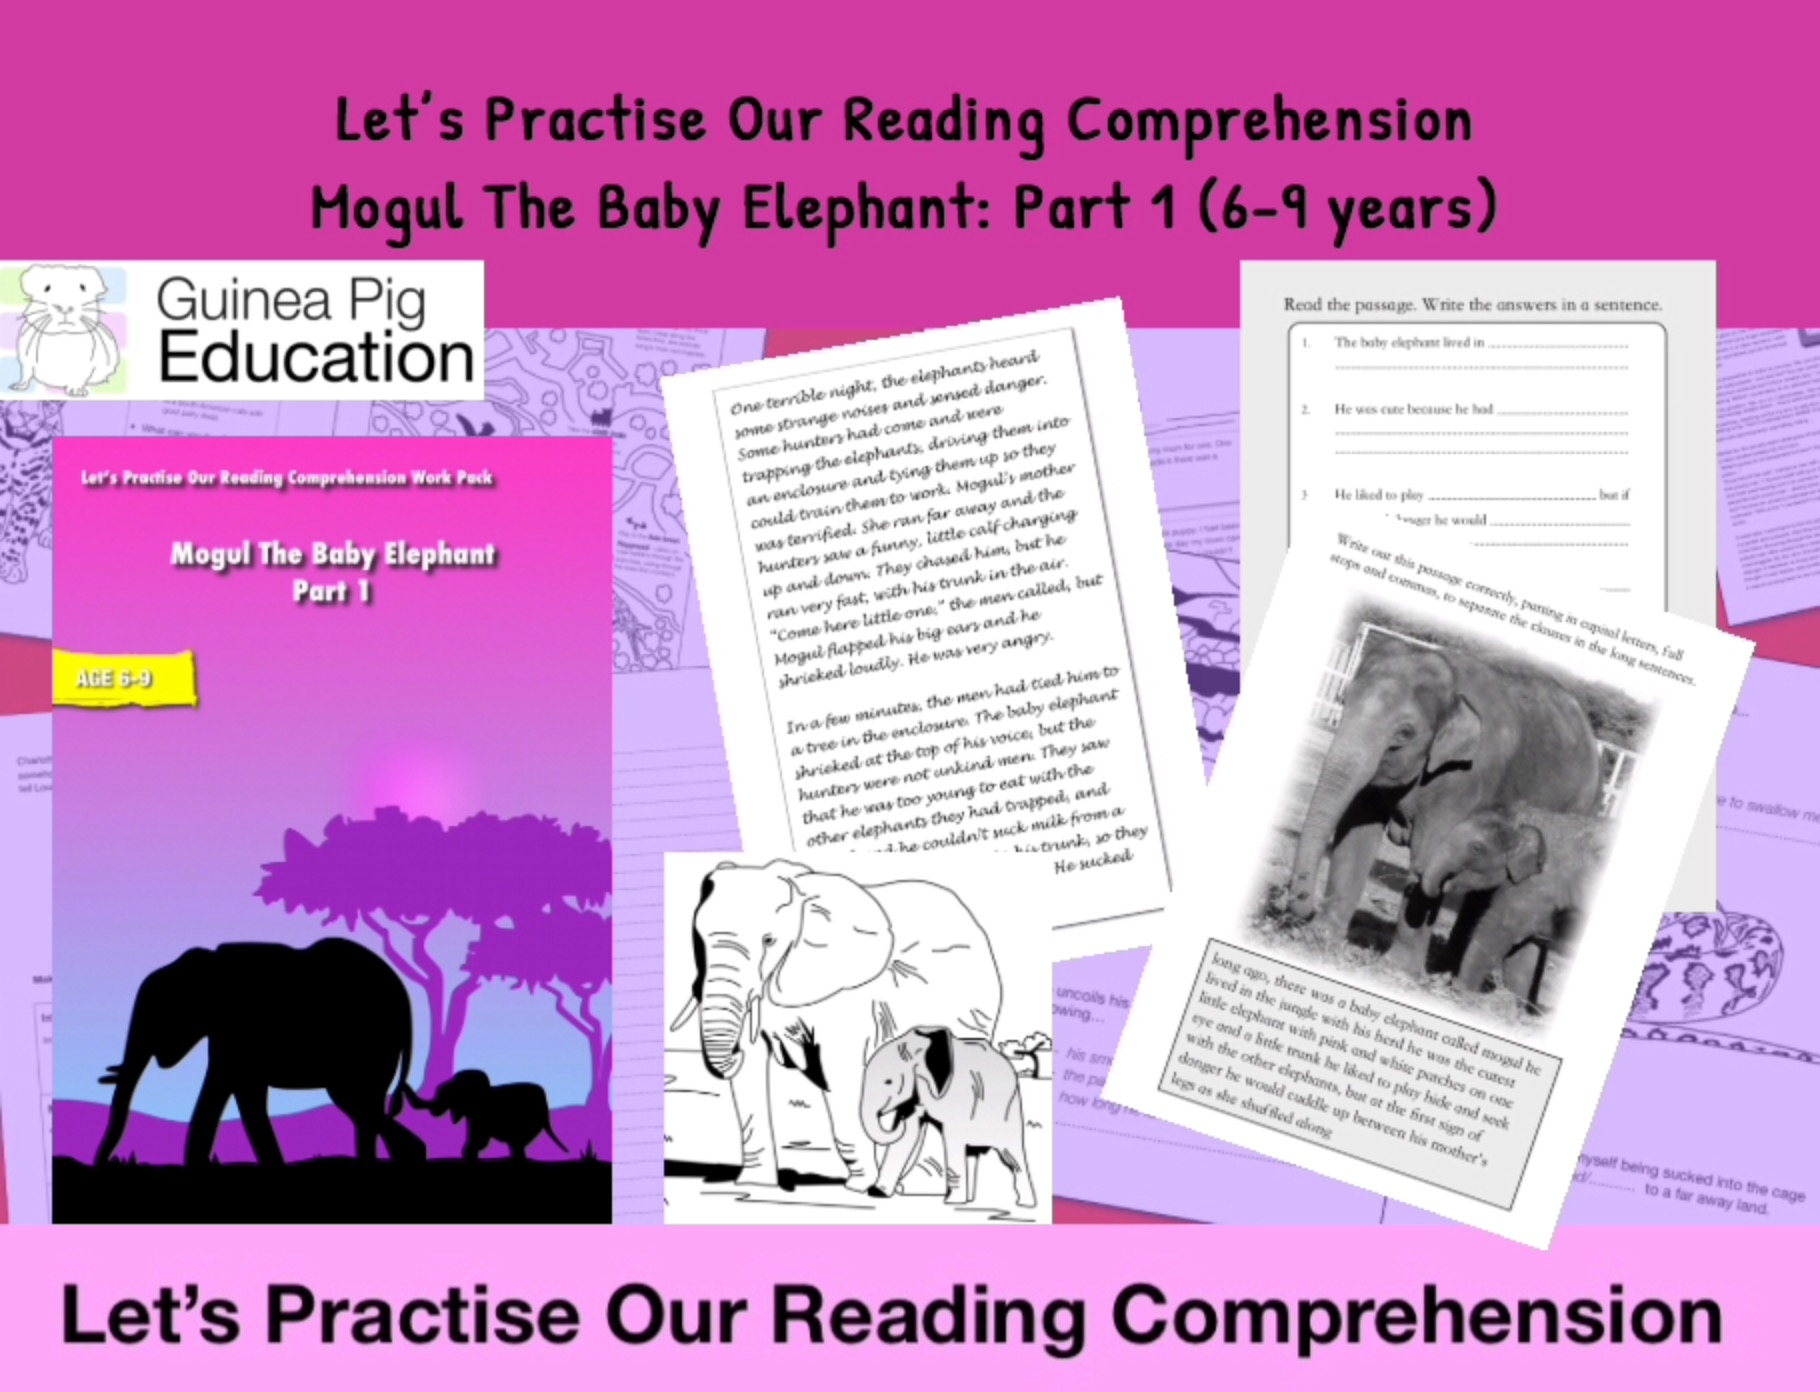 - Let's Practise Our Reading Comprehension: Mogul The Baby Elephant